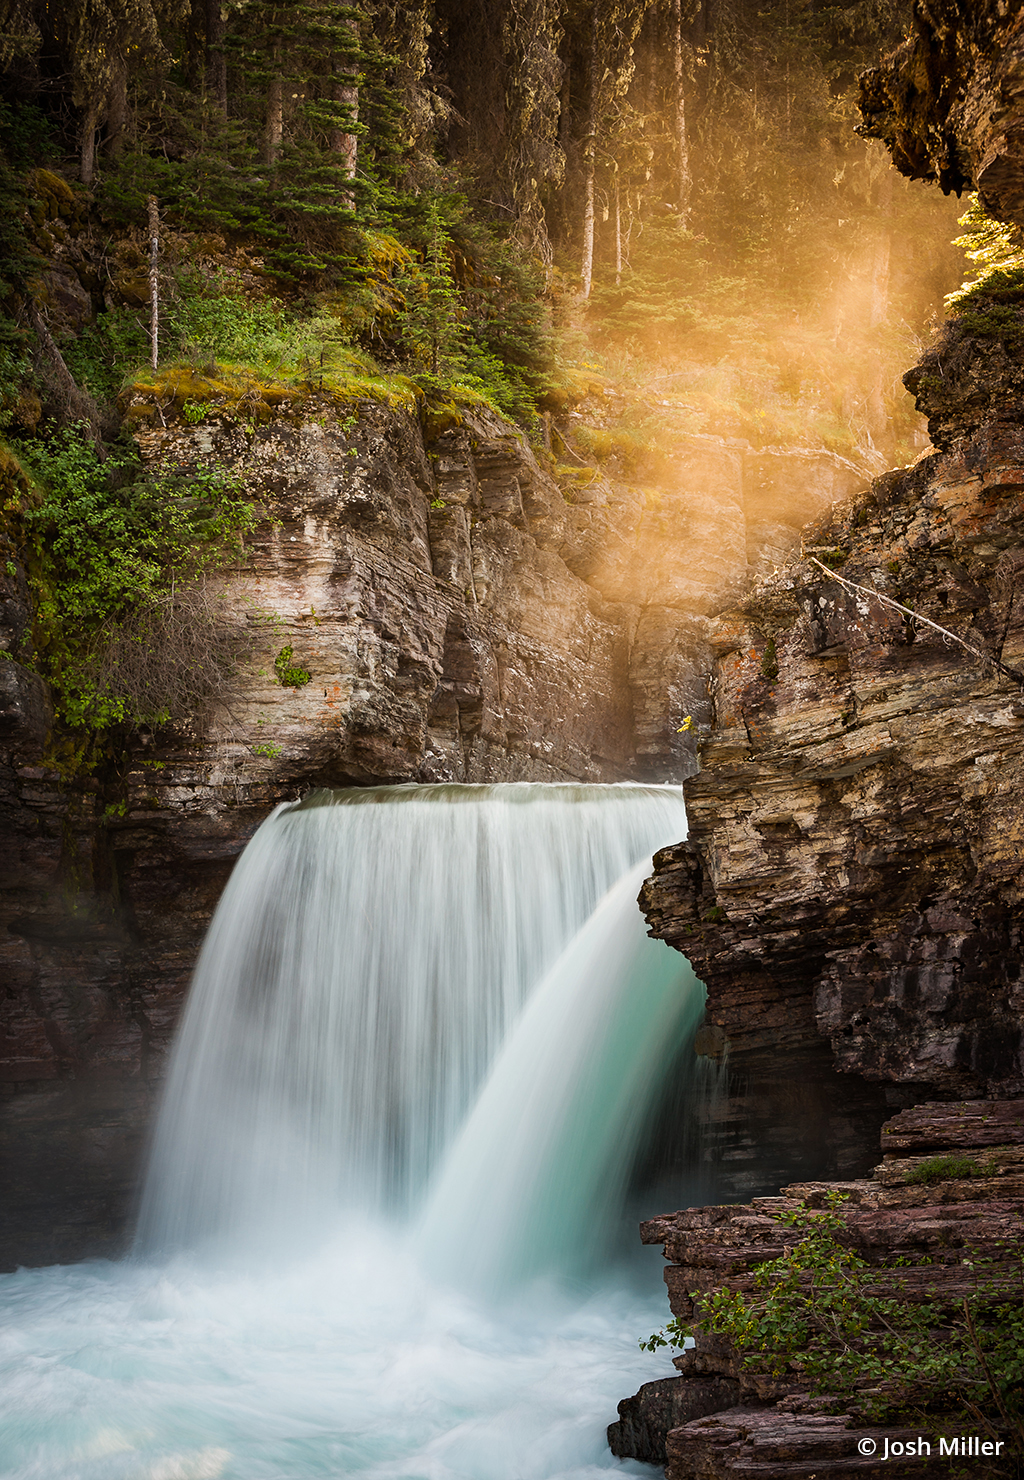 Using a telephoto was a better choice for this waterfall photograph than a wide-angle.